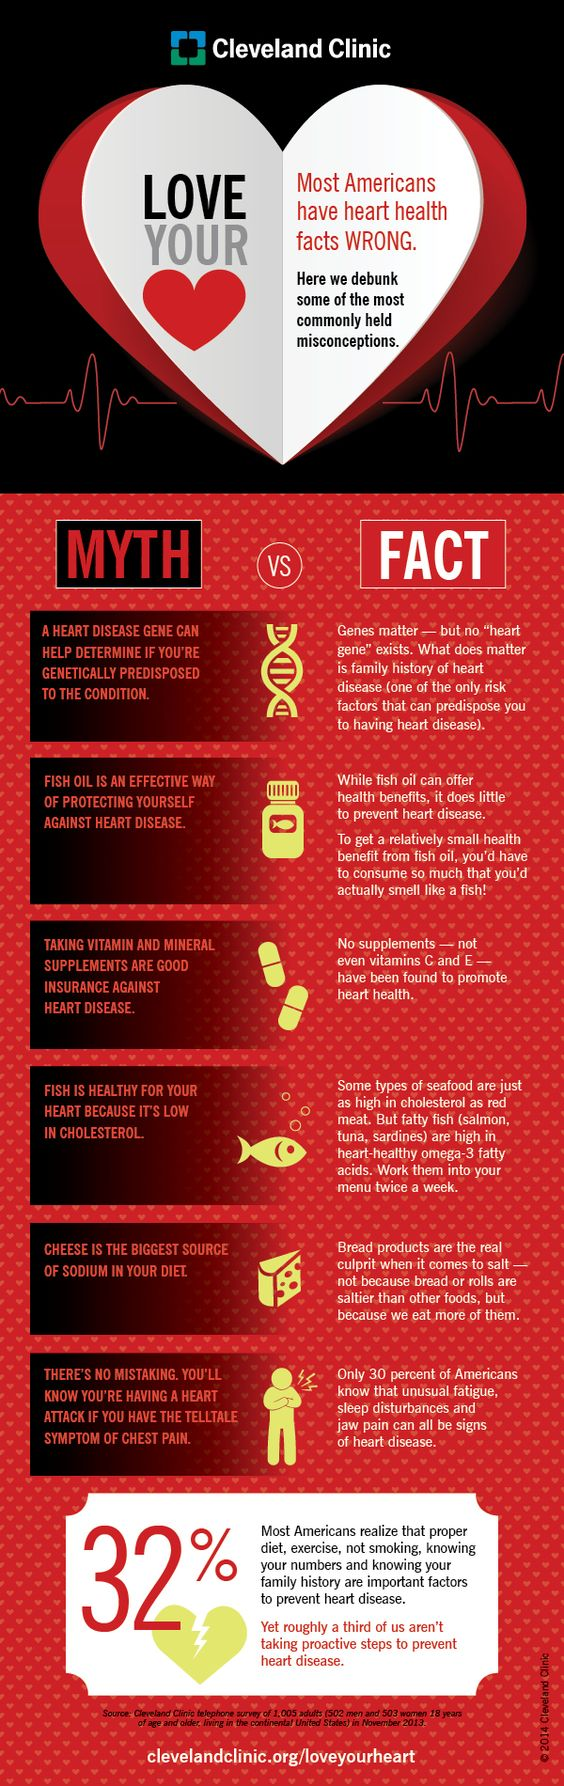 Cleveland Clinic debunks some of the most commonly held misconceptions in this infographic on HealthHub